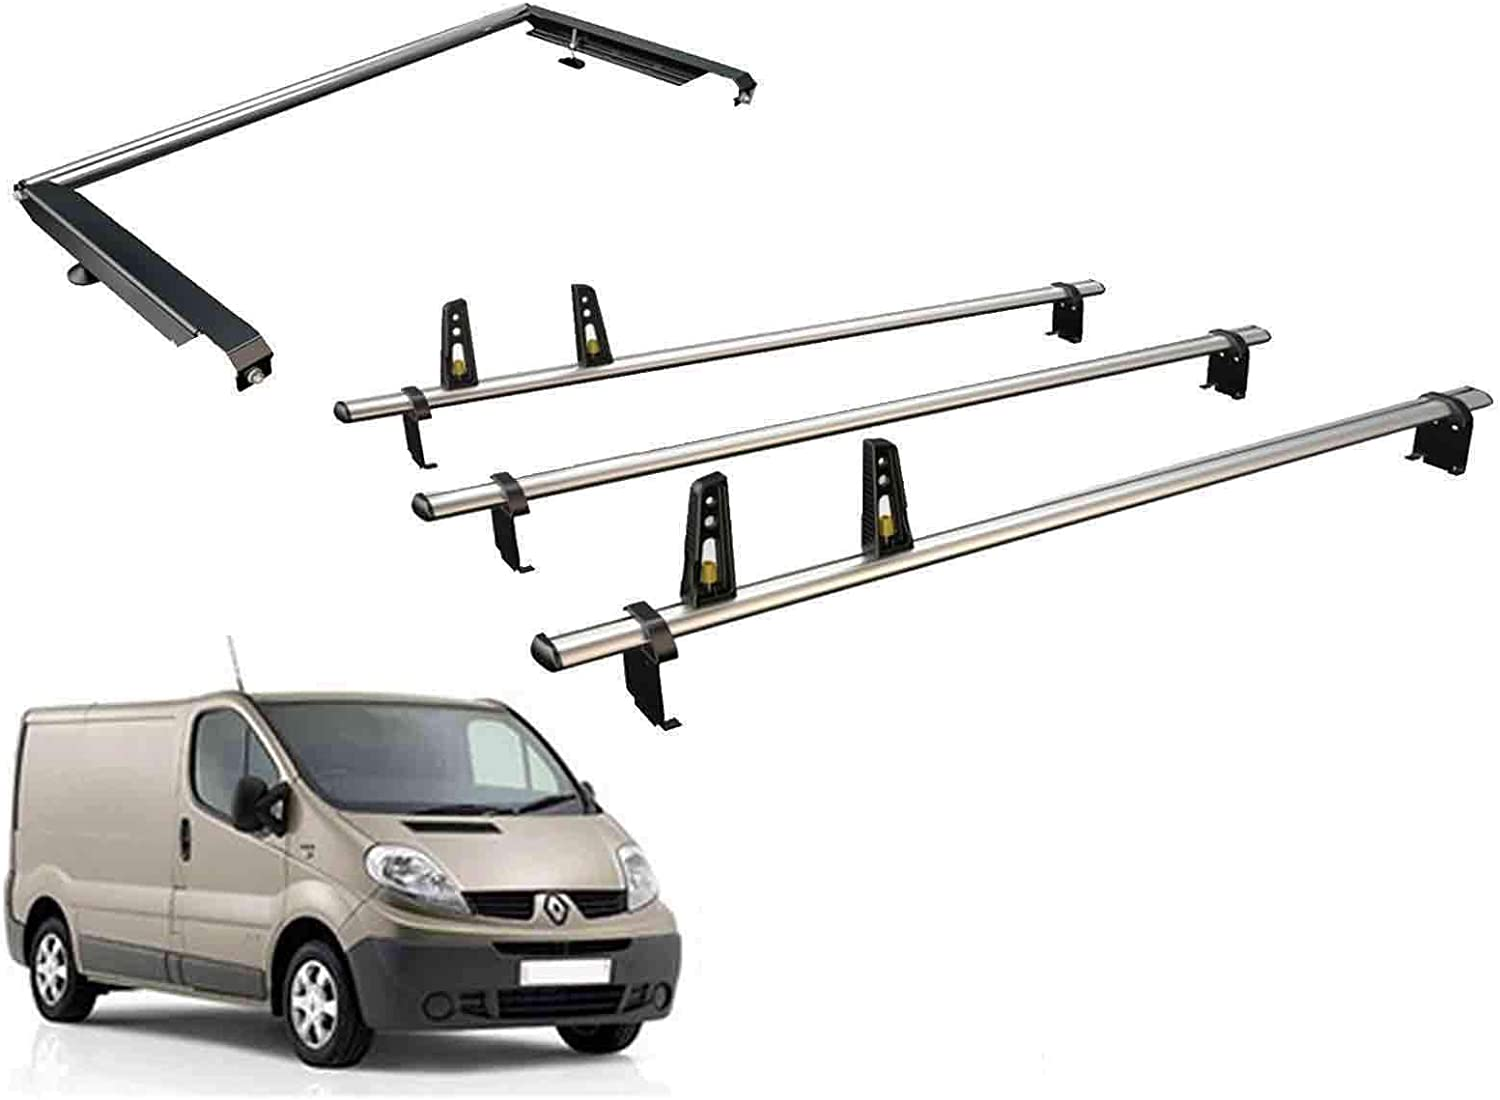 2016 on Van Guard ULTI Bar 3 Roof Bars and Rear Ladder Roller Kit for Peugeot Expert Compact